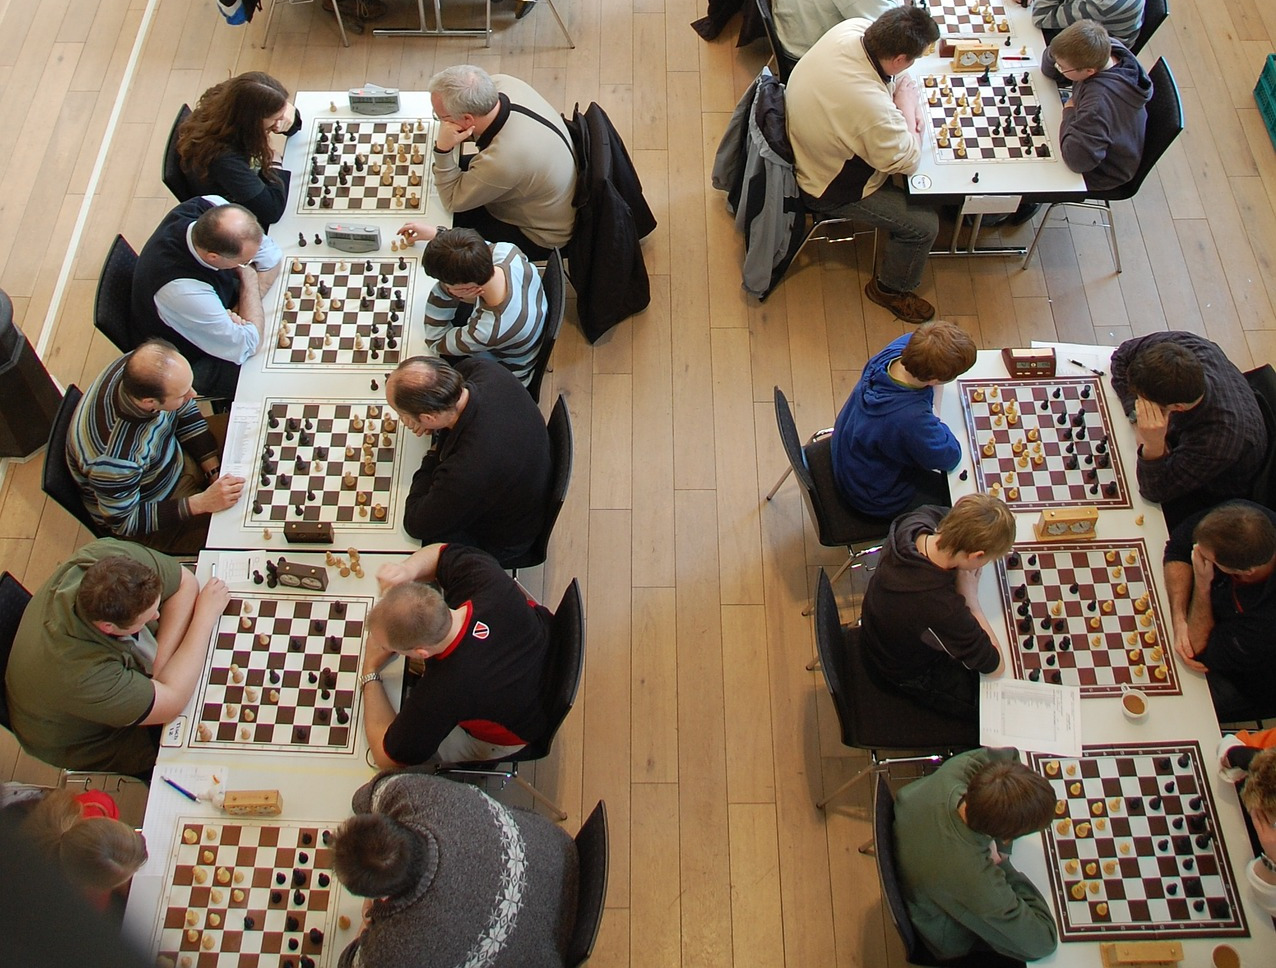 A chess tournament